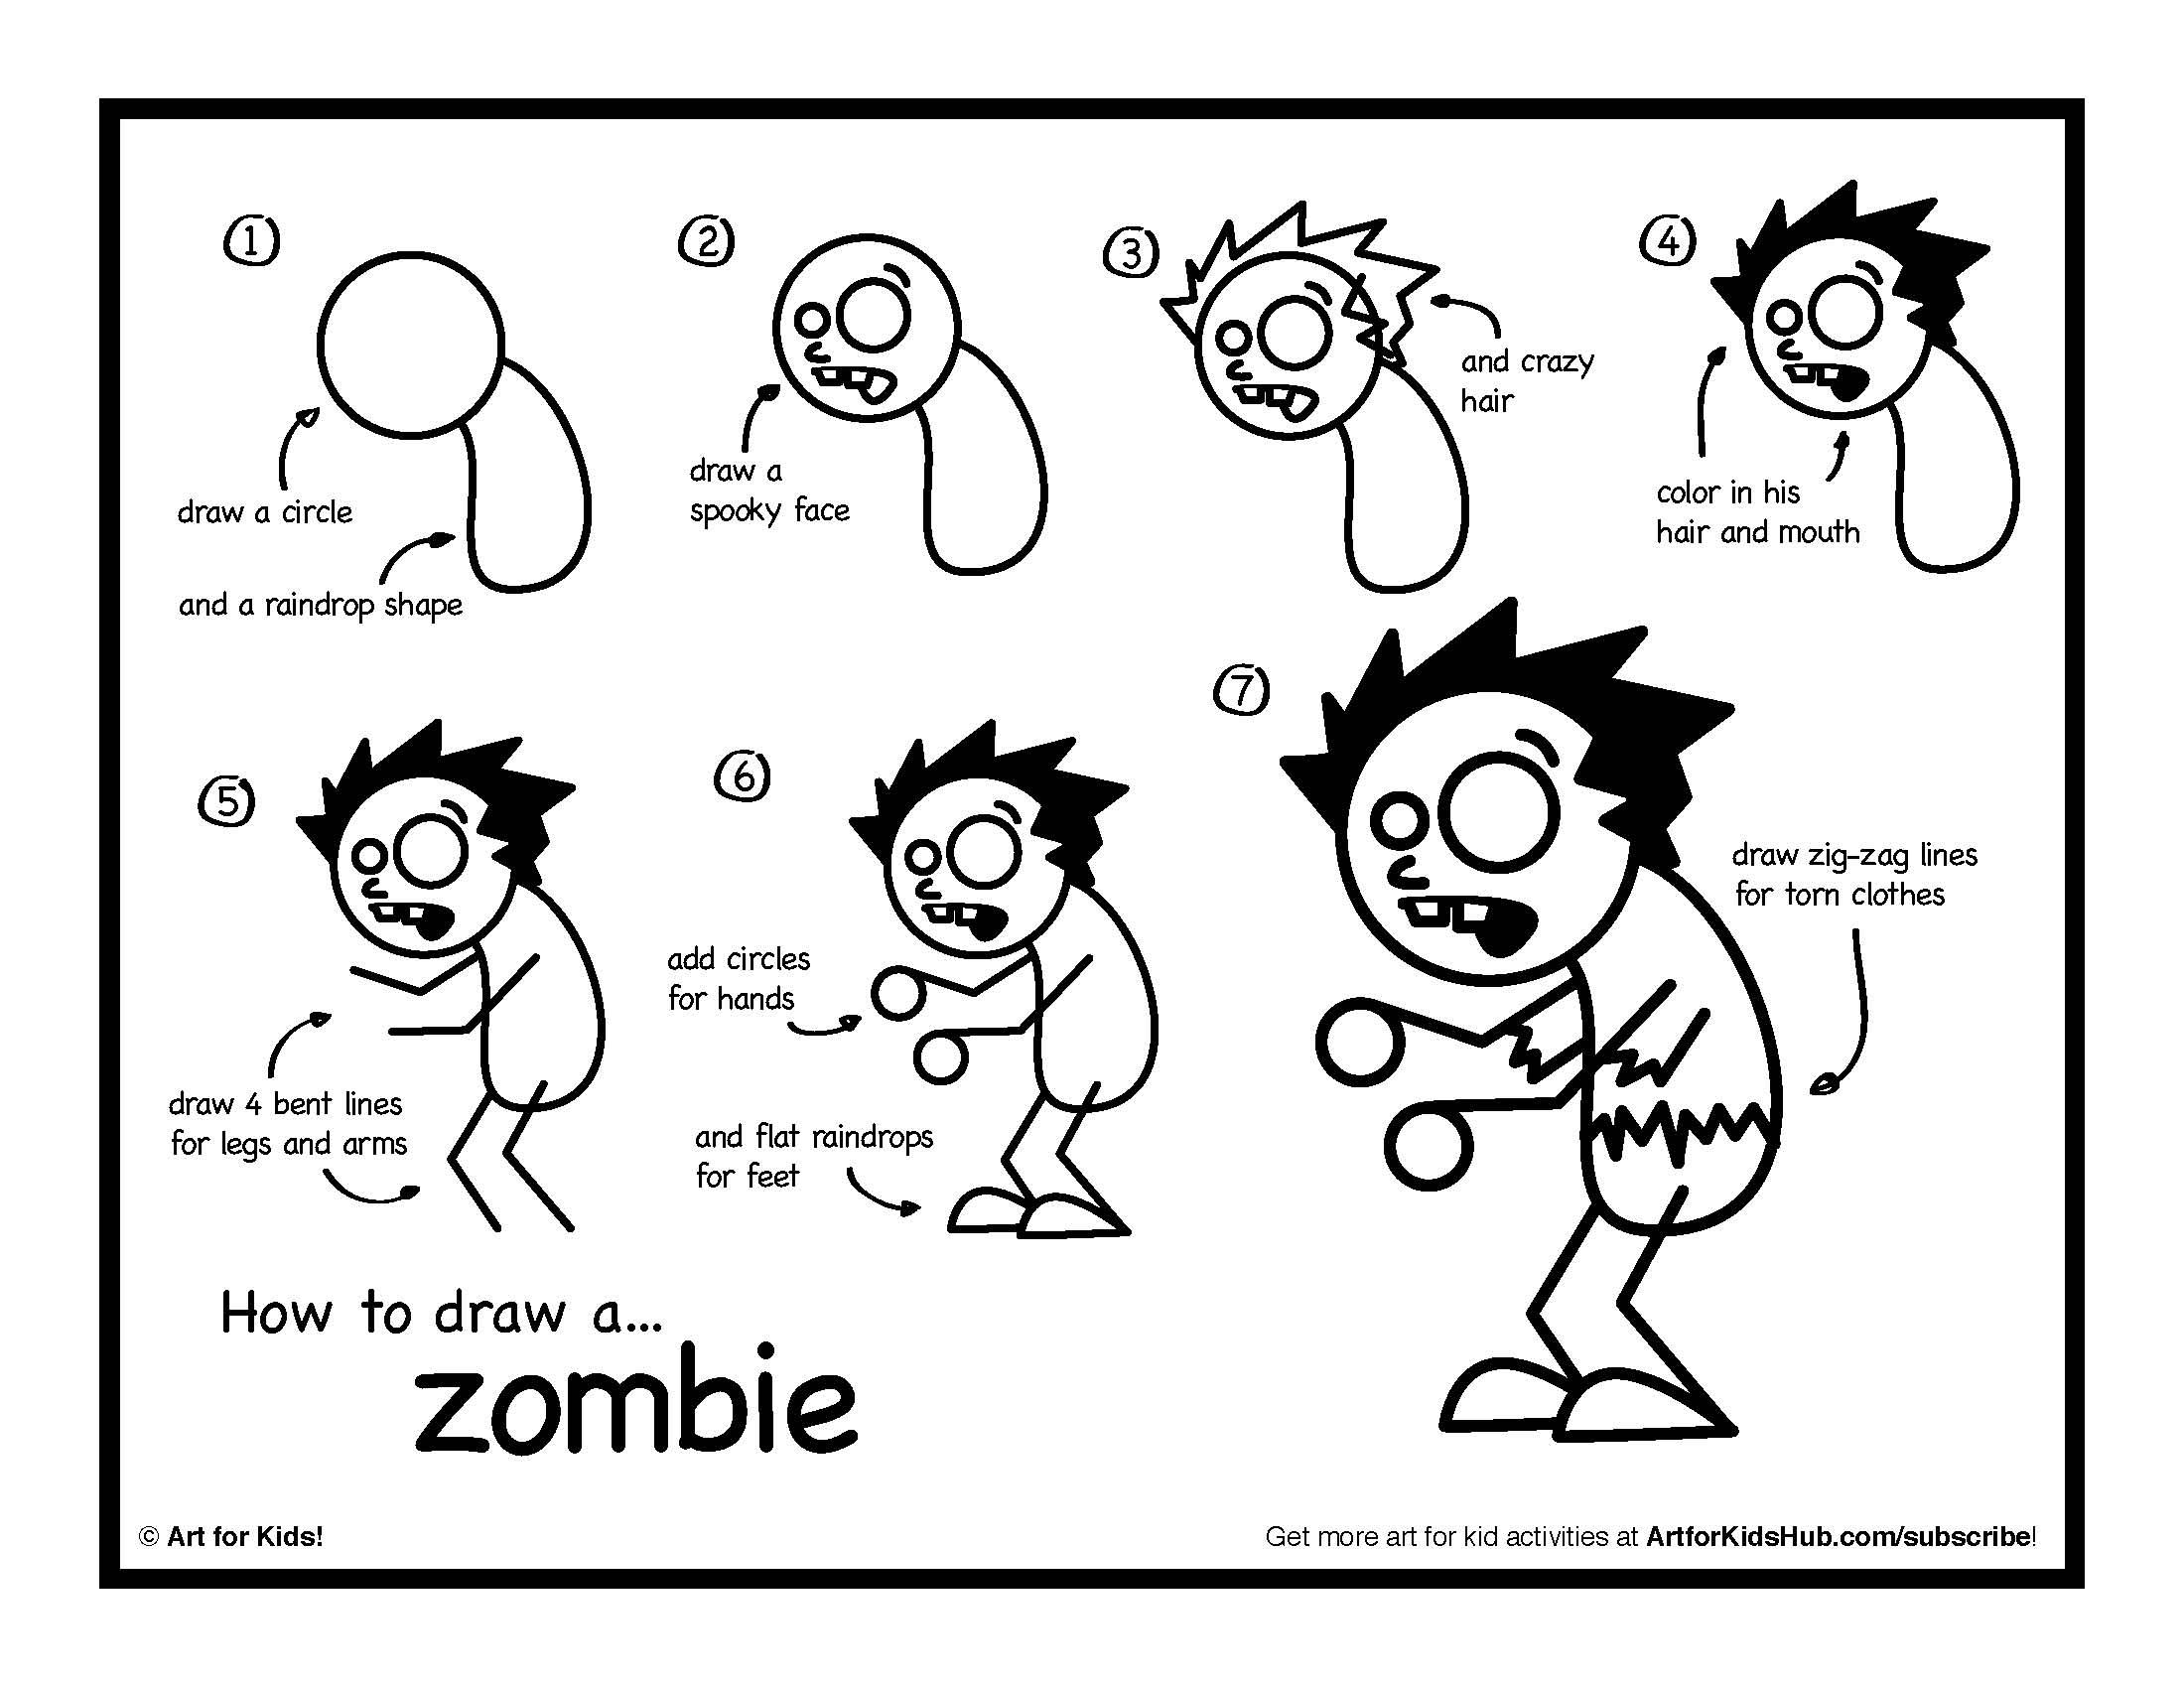 How To Draw A Zombie From Plants Vs Zombies Zombie Art And Doodles